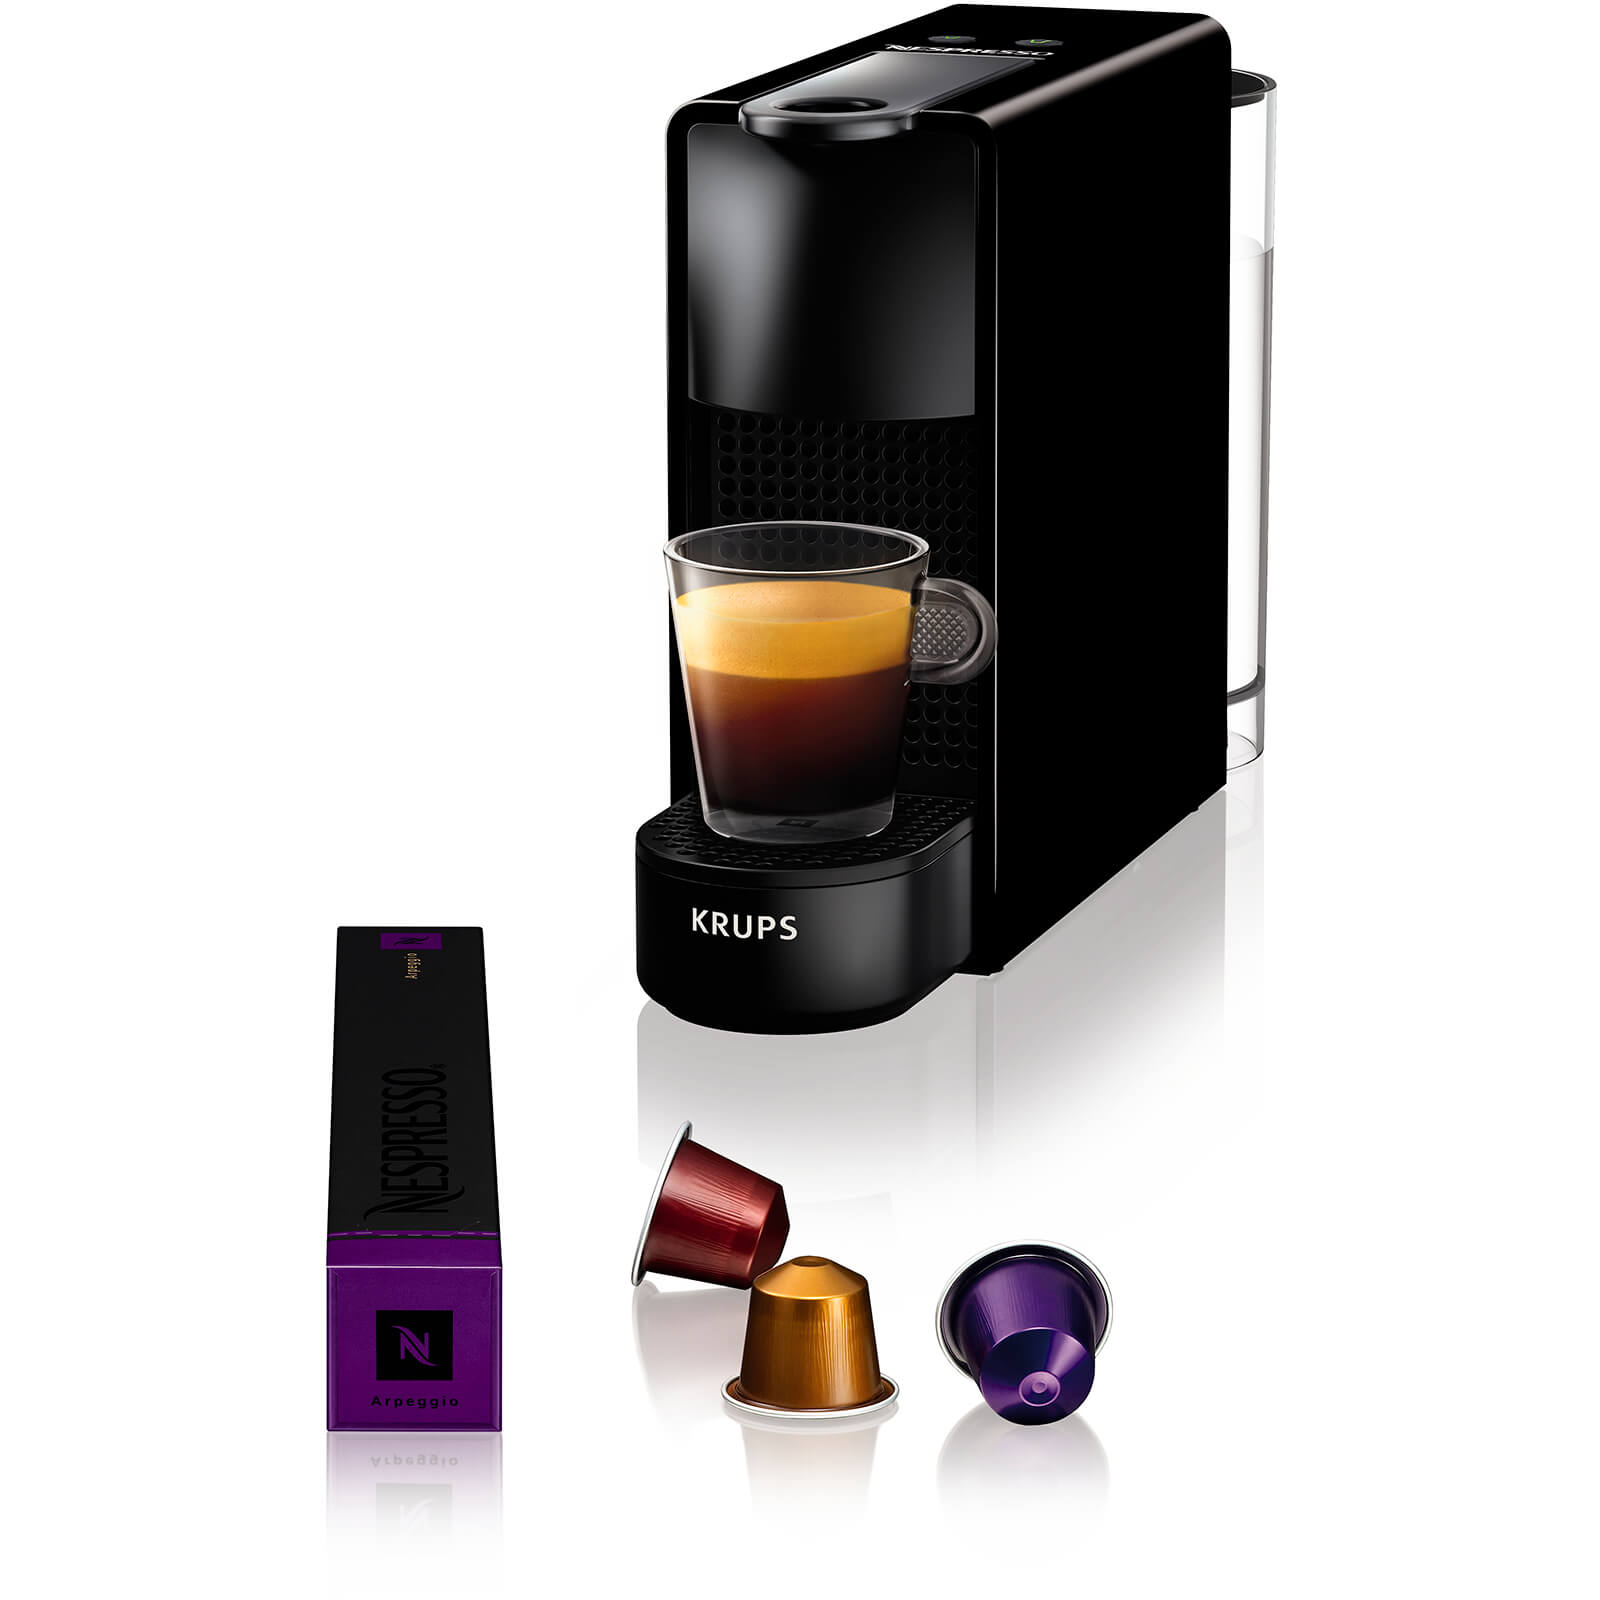 Nespresso by KRUPS XN110840 Essenza Mini Coffee Machine - Piano Black